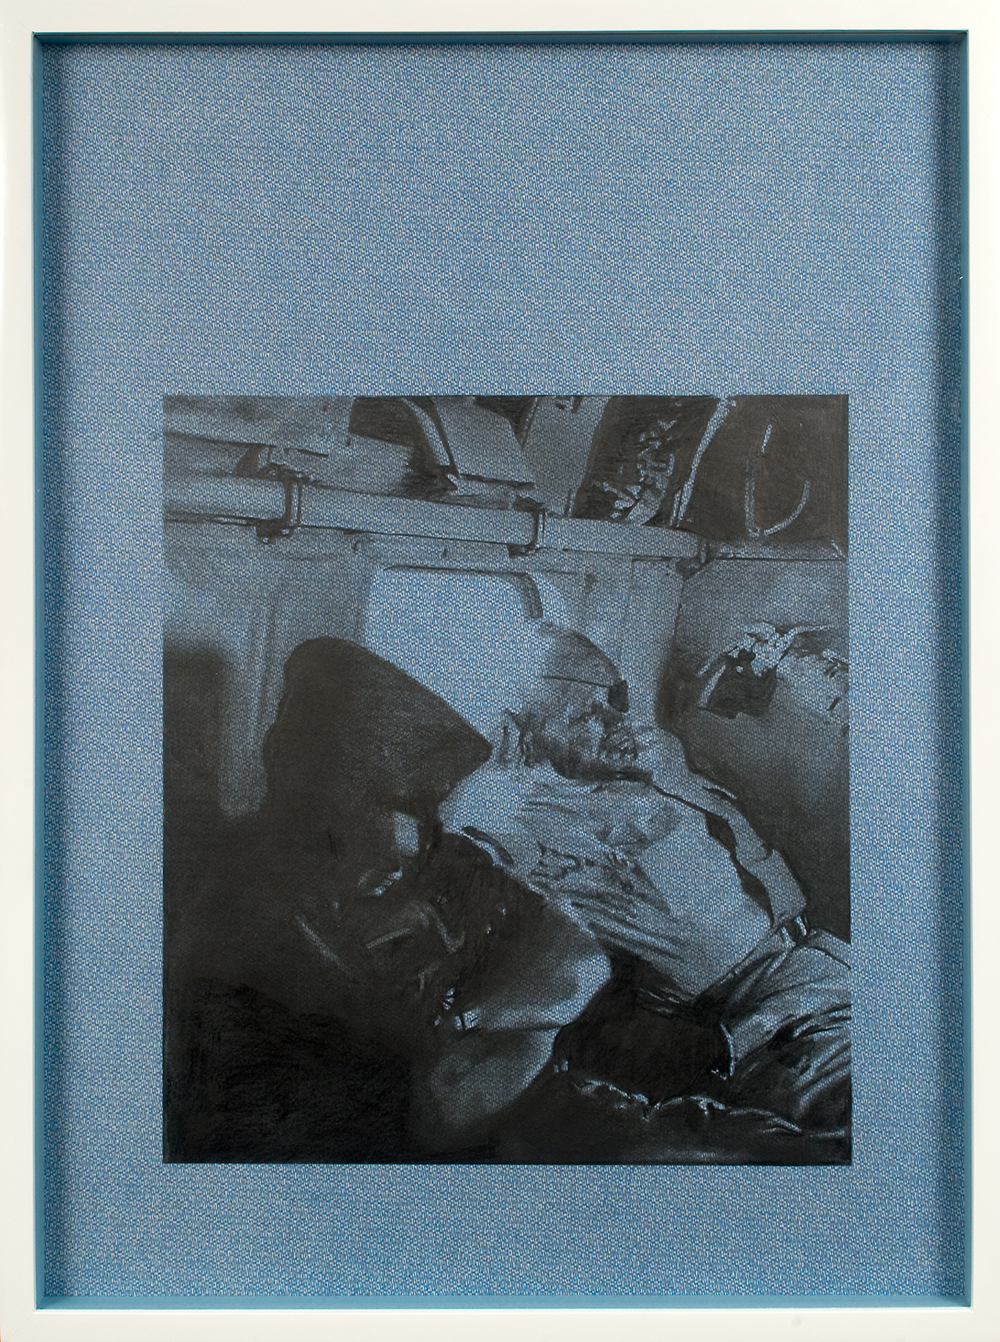 "no.34- Untitled (Yitzak Rabin) pencil on paper, ink jet print, 21""x28""/ 53cmx71cm,            2007/08"